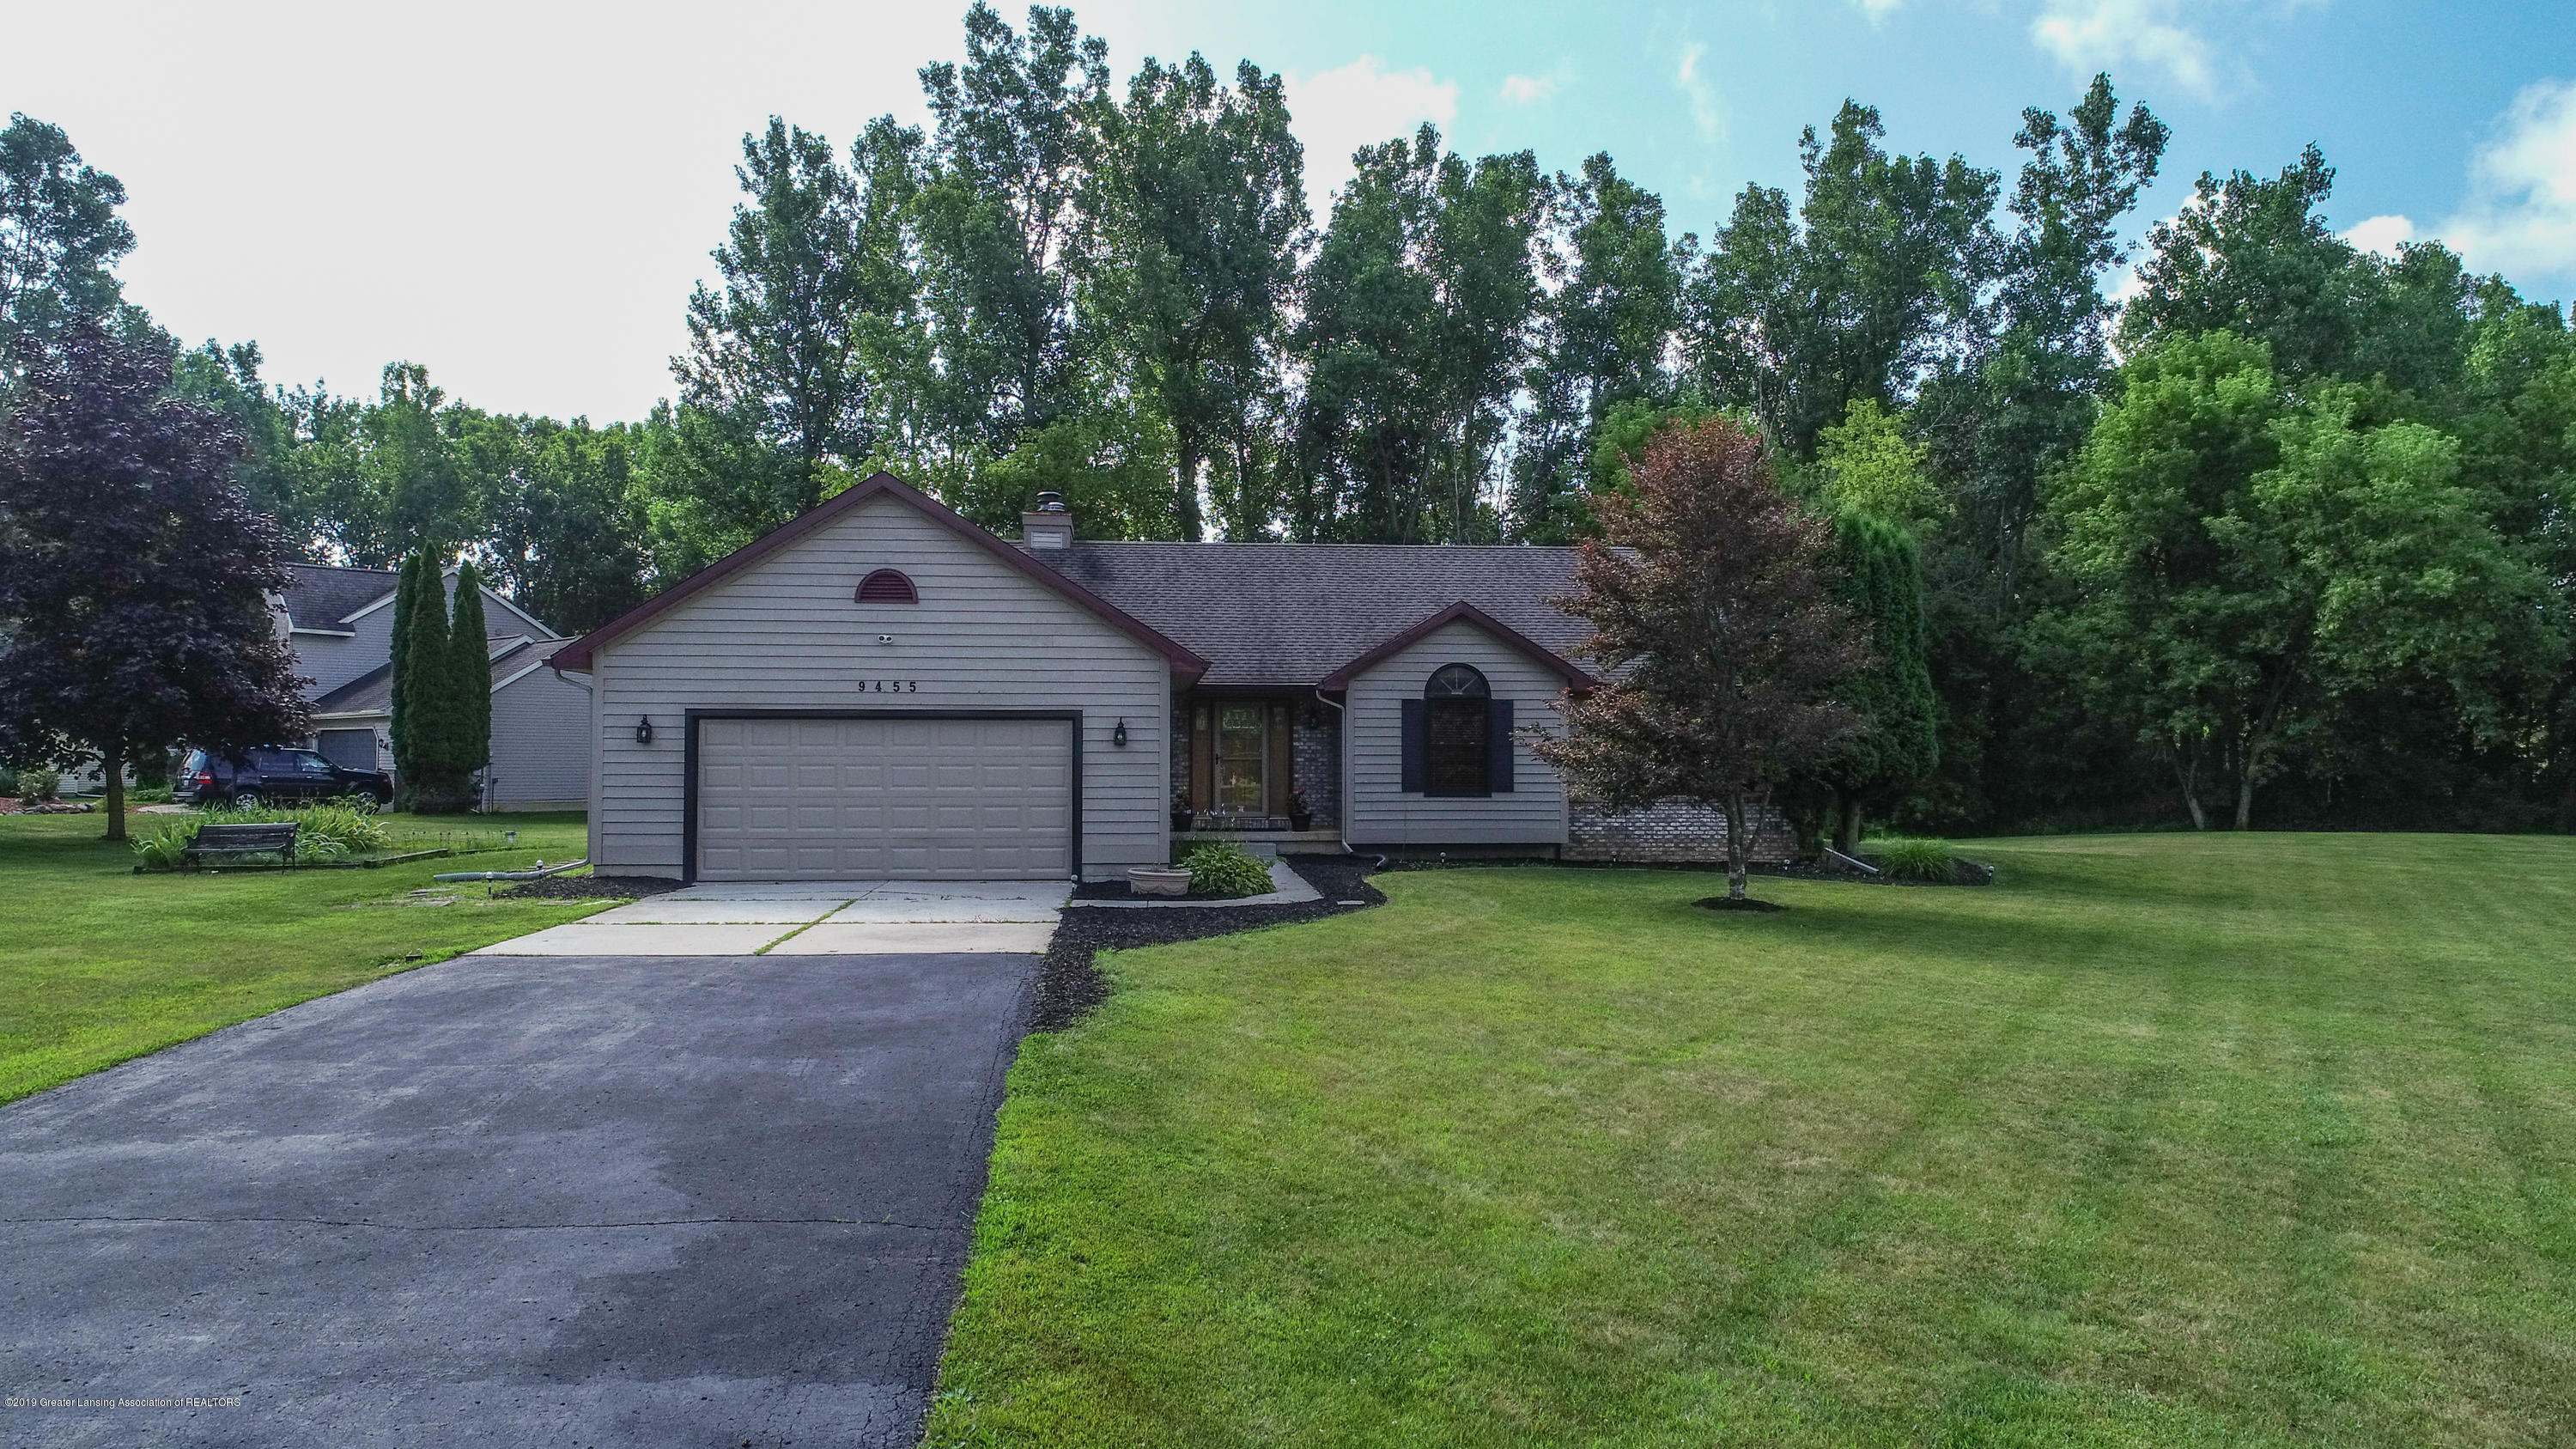 9455 Lookout Point Dr - LaLP-0548 - 3